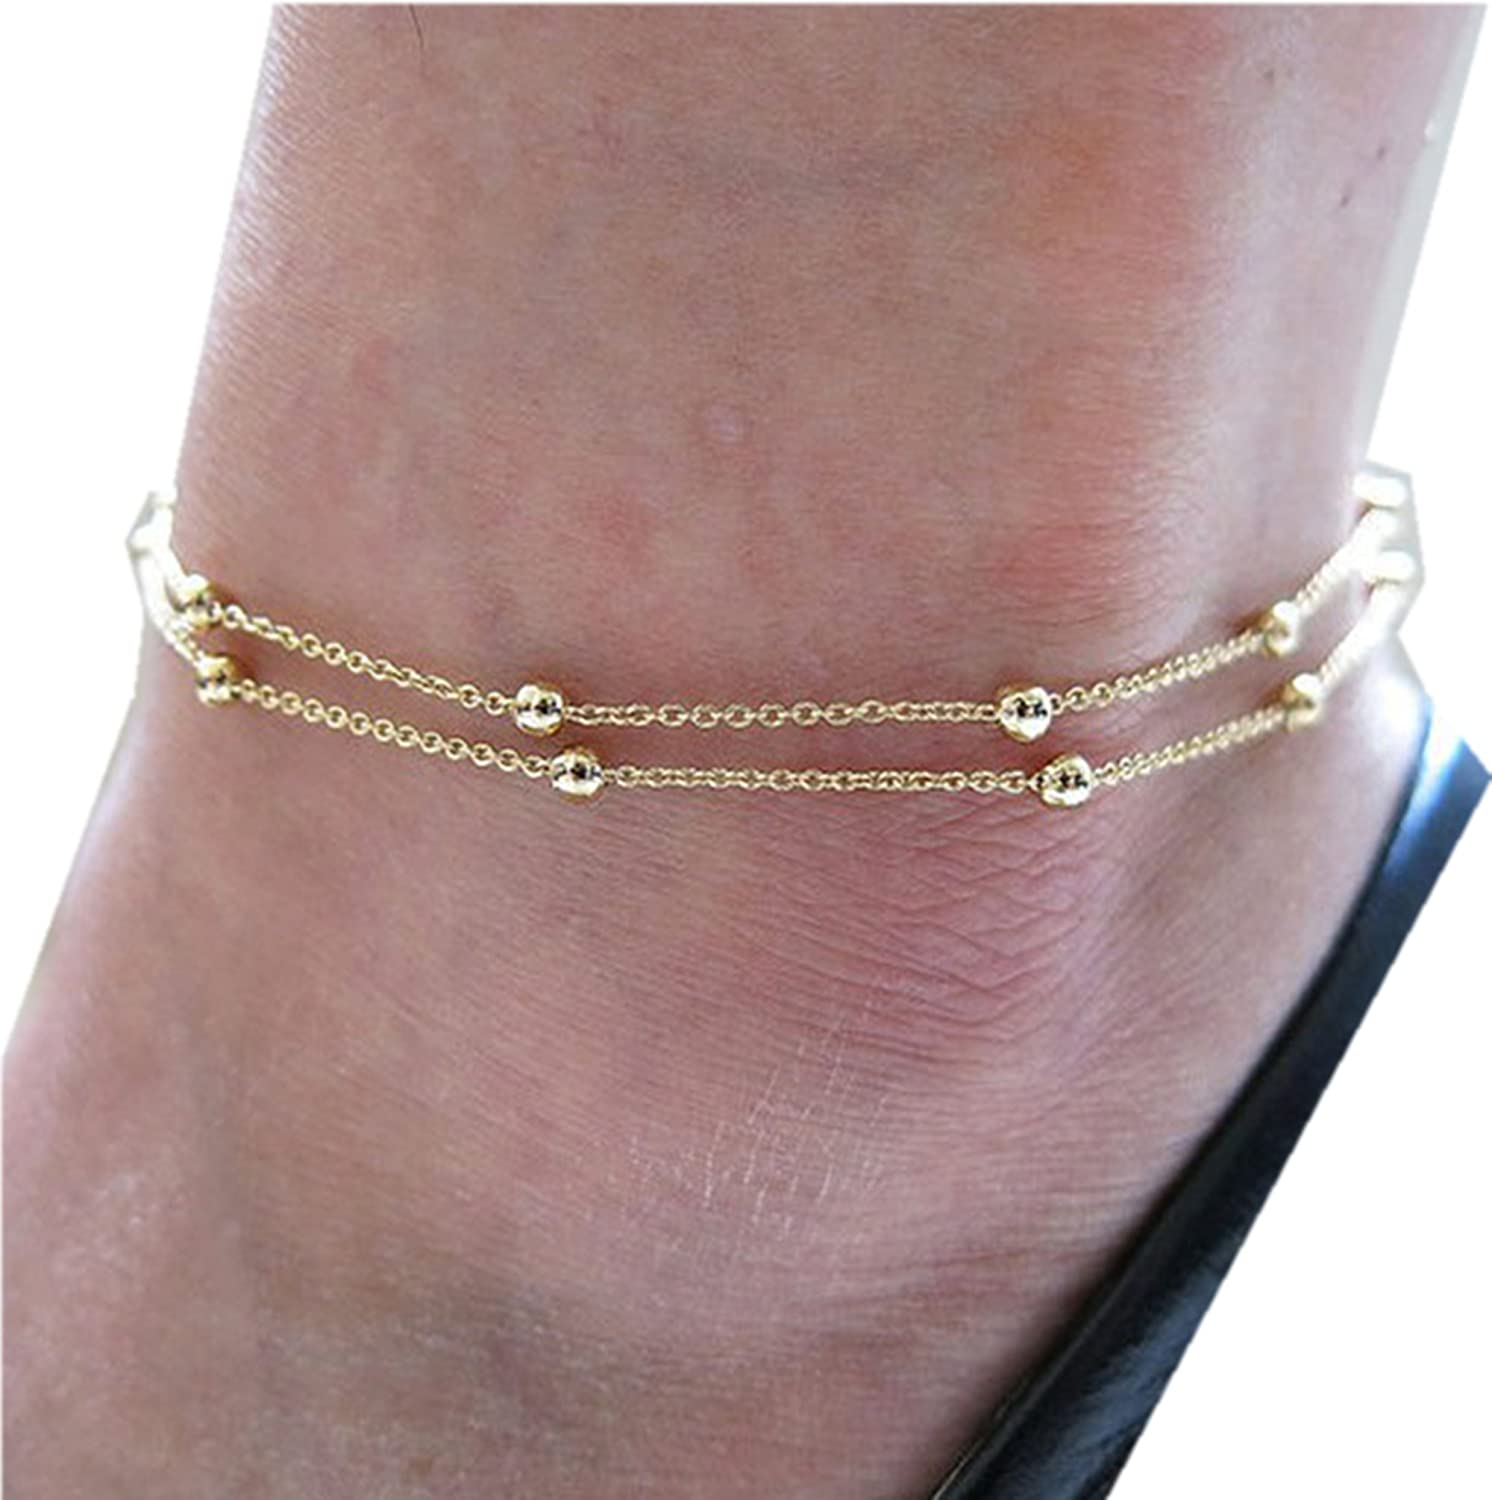 beach products life bracelets pura vida ankle bracelet waterproof anklet